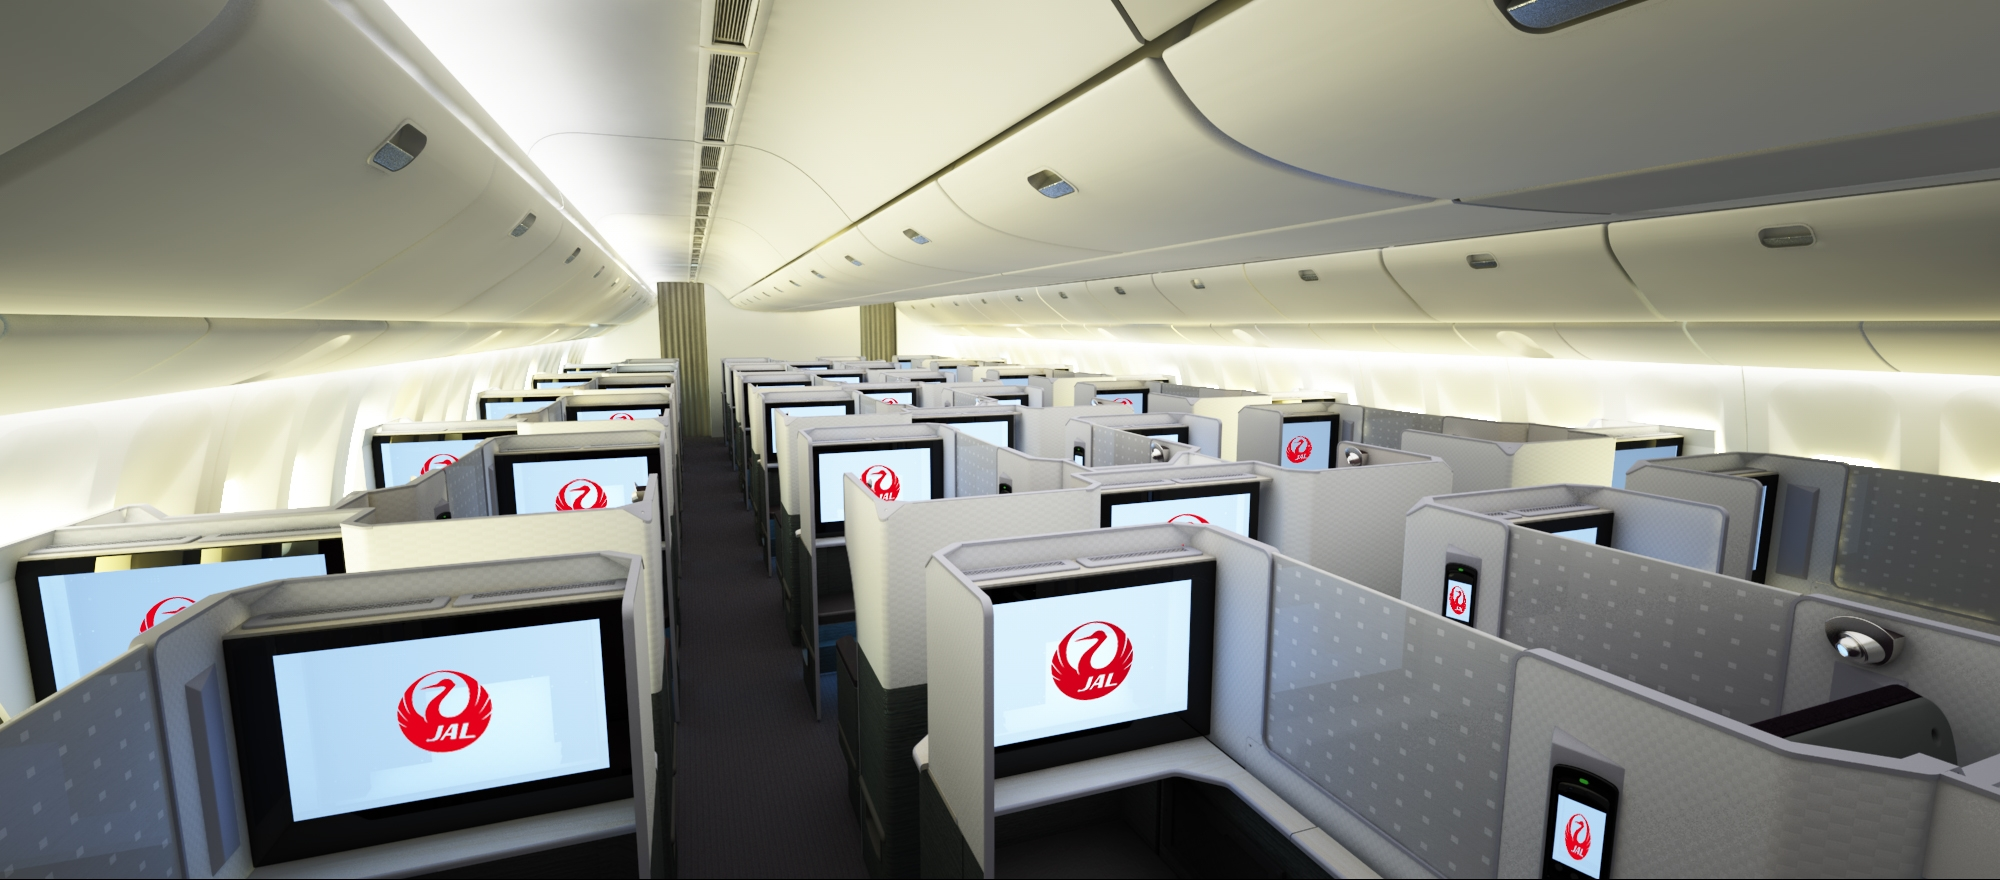 Blick in die neue JAL Business Class